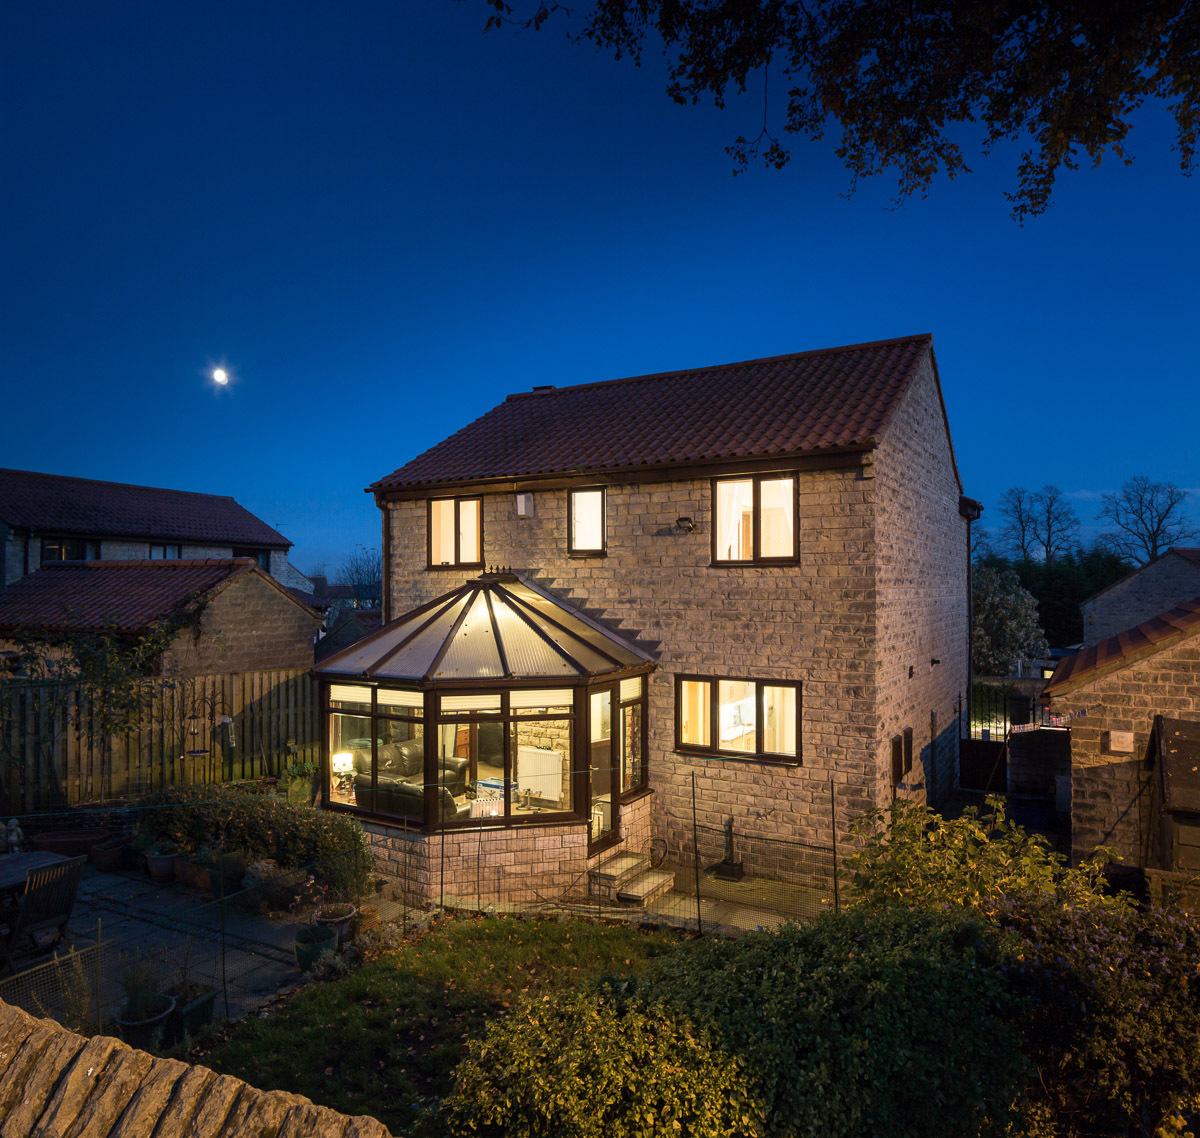 Property photography at night